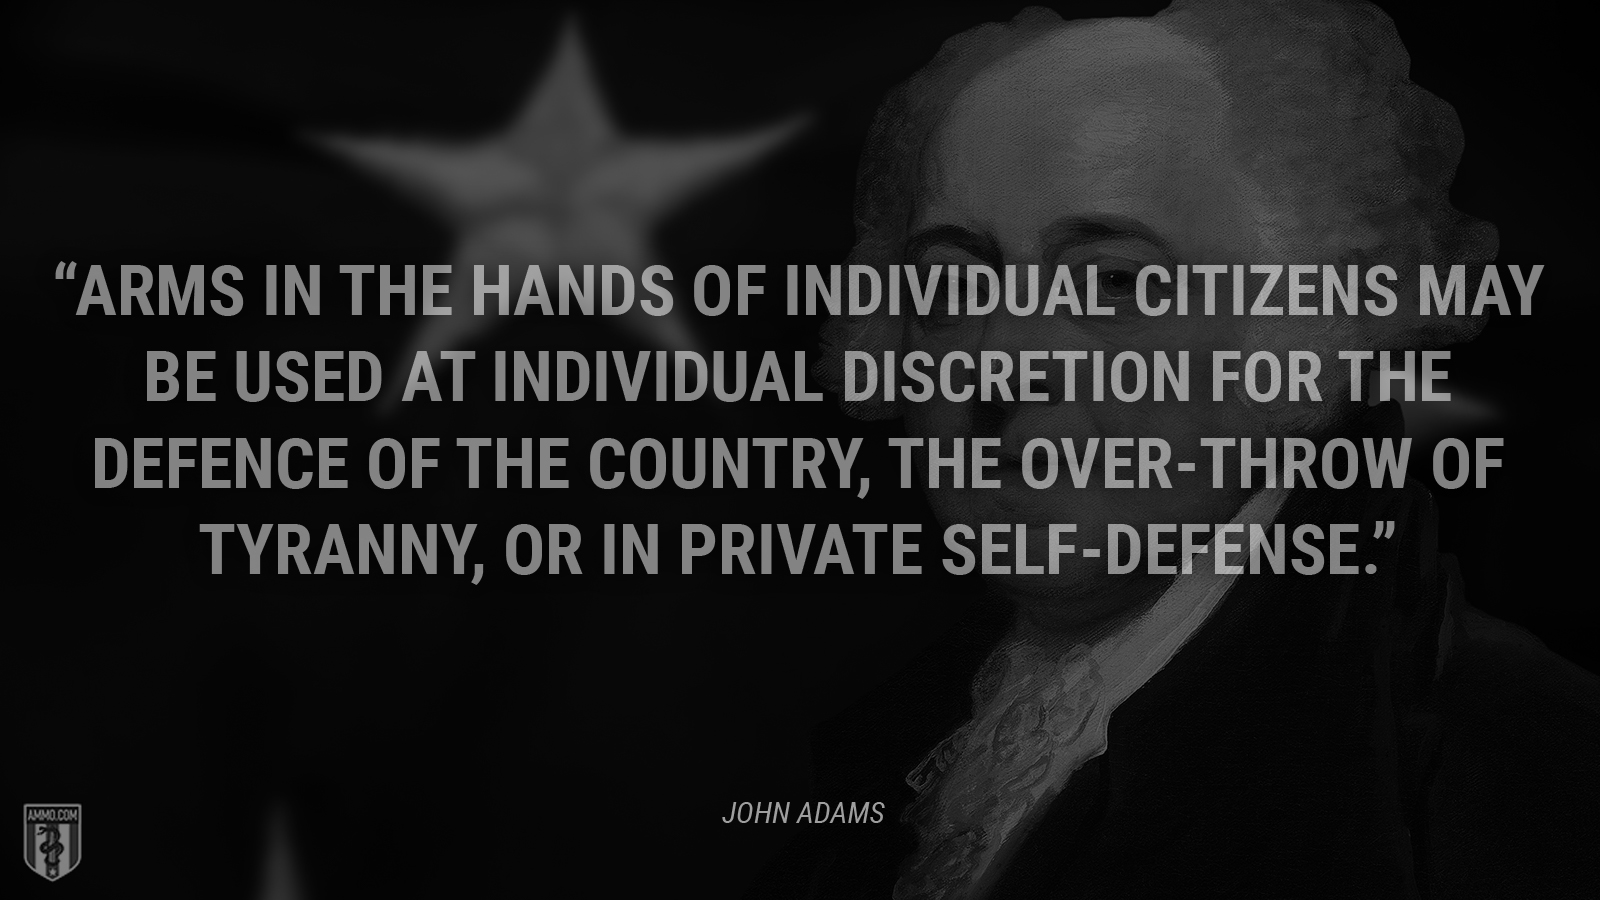 """Arms in the hands of individual citizens may be used at individual discretion for the defence of the country, the over-throw of tyranny, or in private self-defense."" - John Adams"